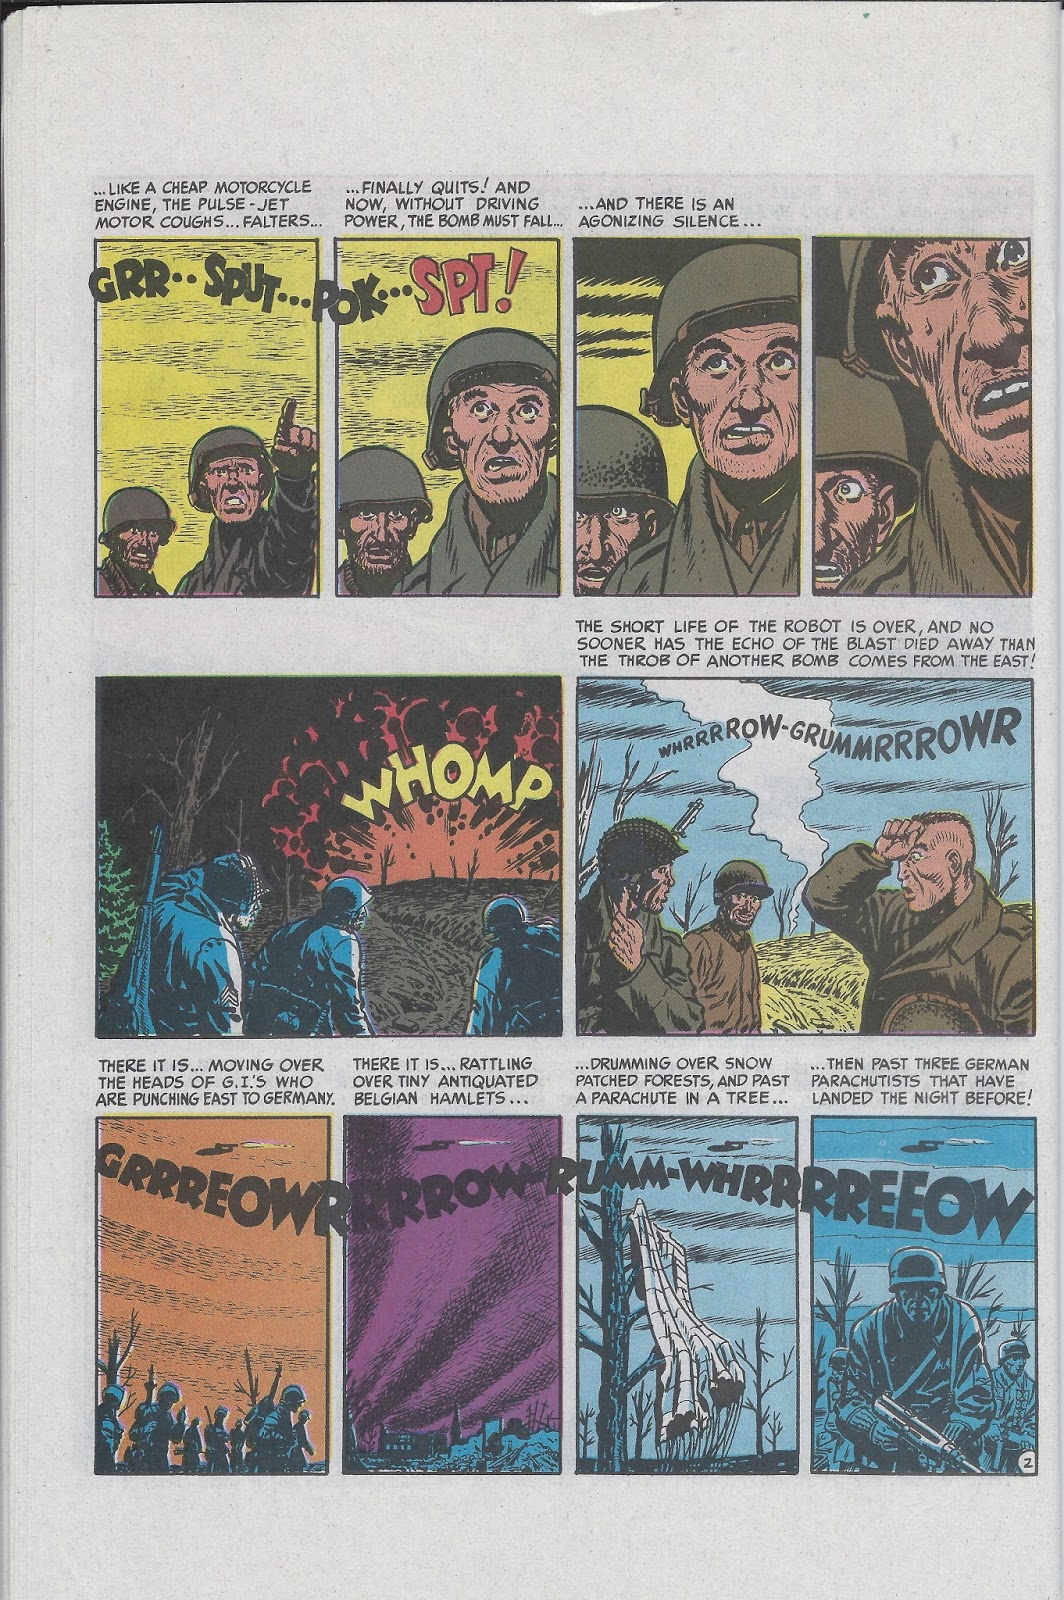 Two-Fisted Tales (1950) #25 Buzz Bomb pg2, penciled by John Severin & inked by Will Elder.